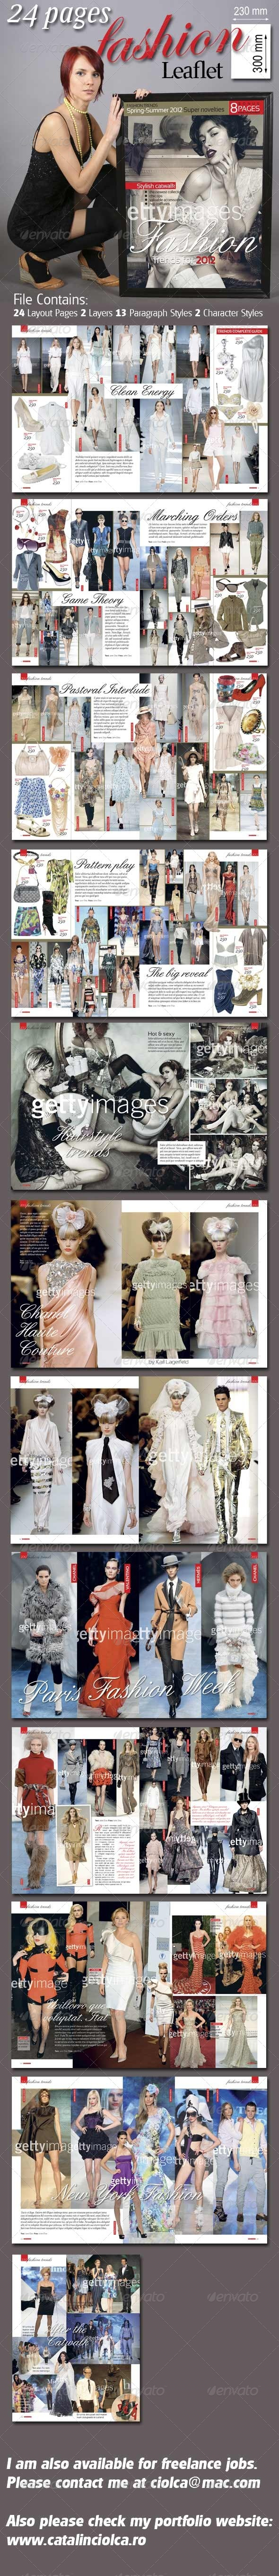 GraphicRiver 24 Pages Fashion Leaflet 670280